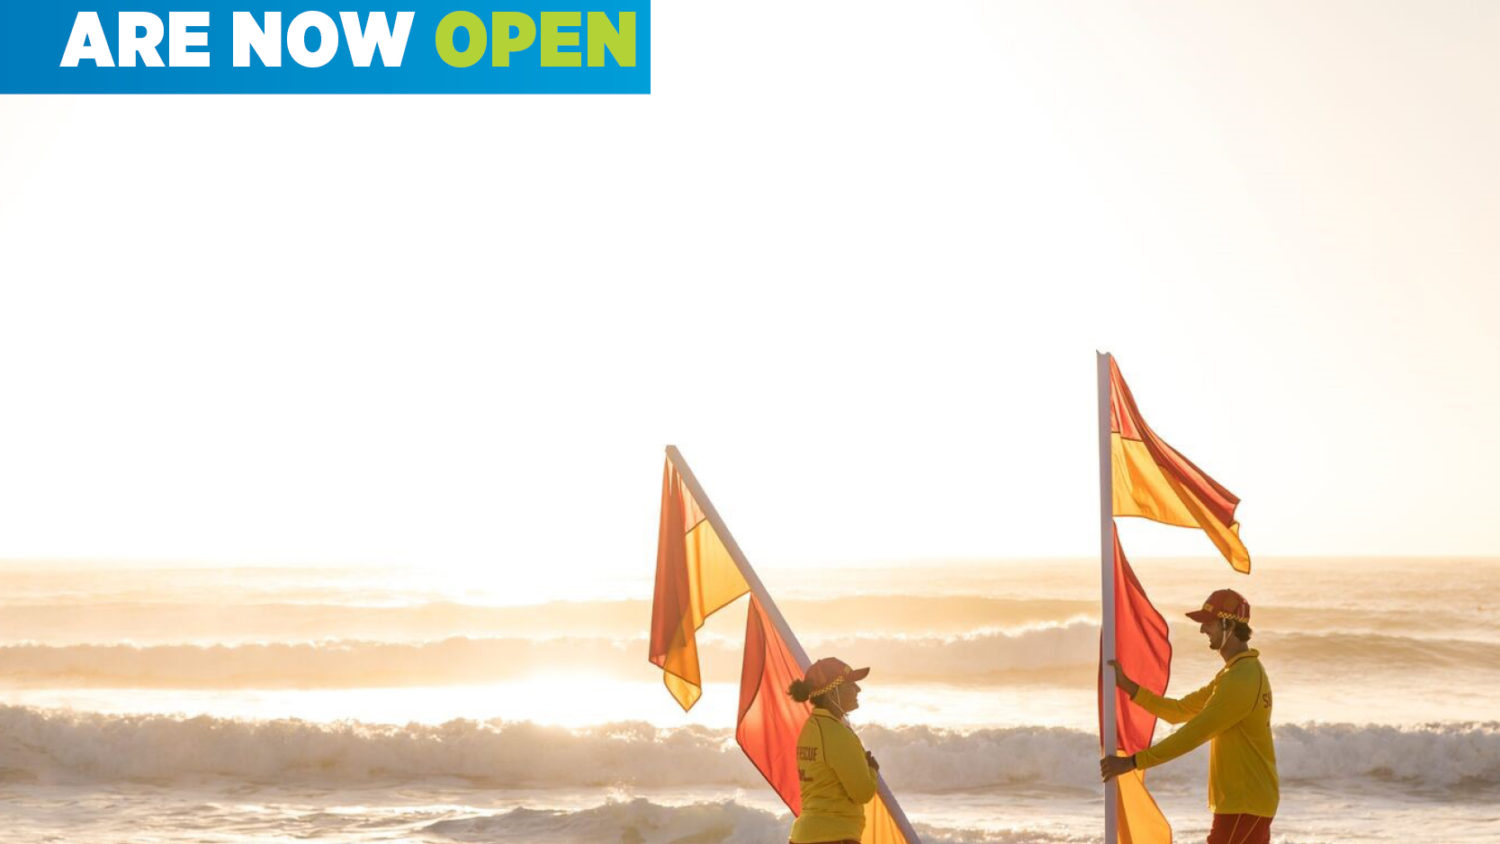 $4 MILLION NSW SURF CLUB FUND OPENS